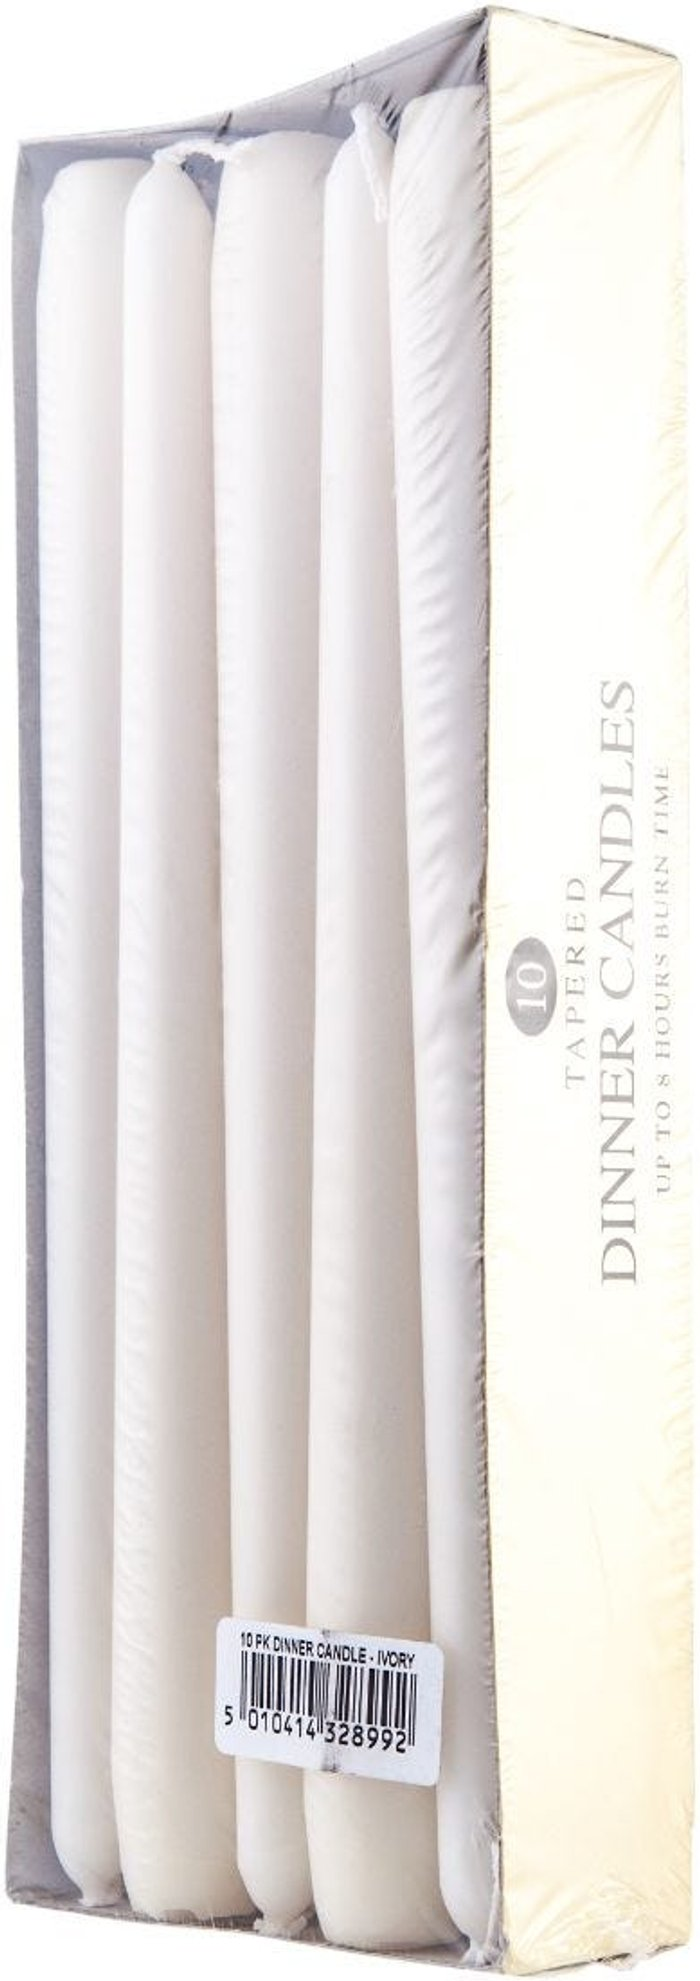 Price's Candles Price's Candles Prices Tapered Dinner Candles - Pack of 10, Ivory